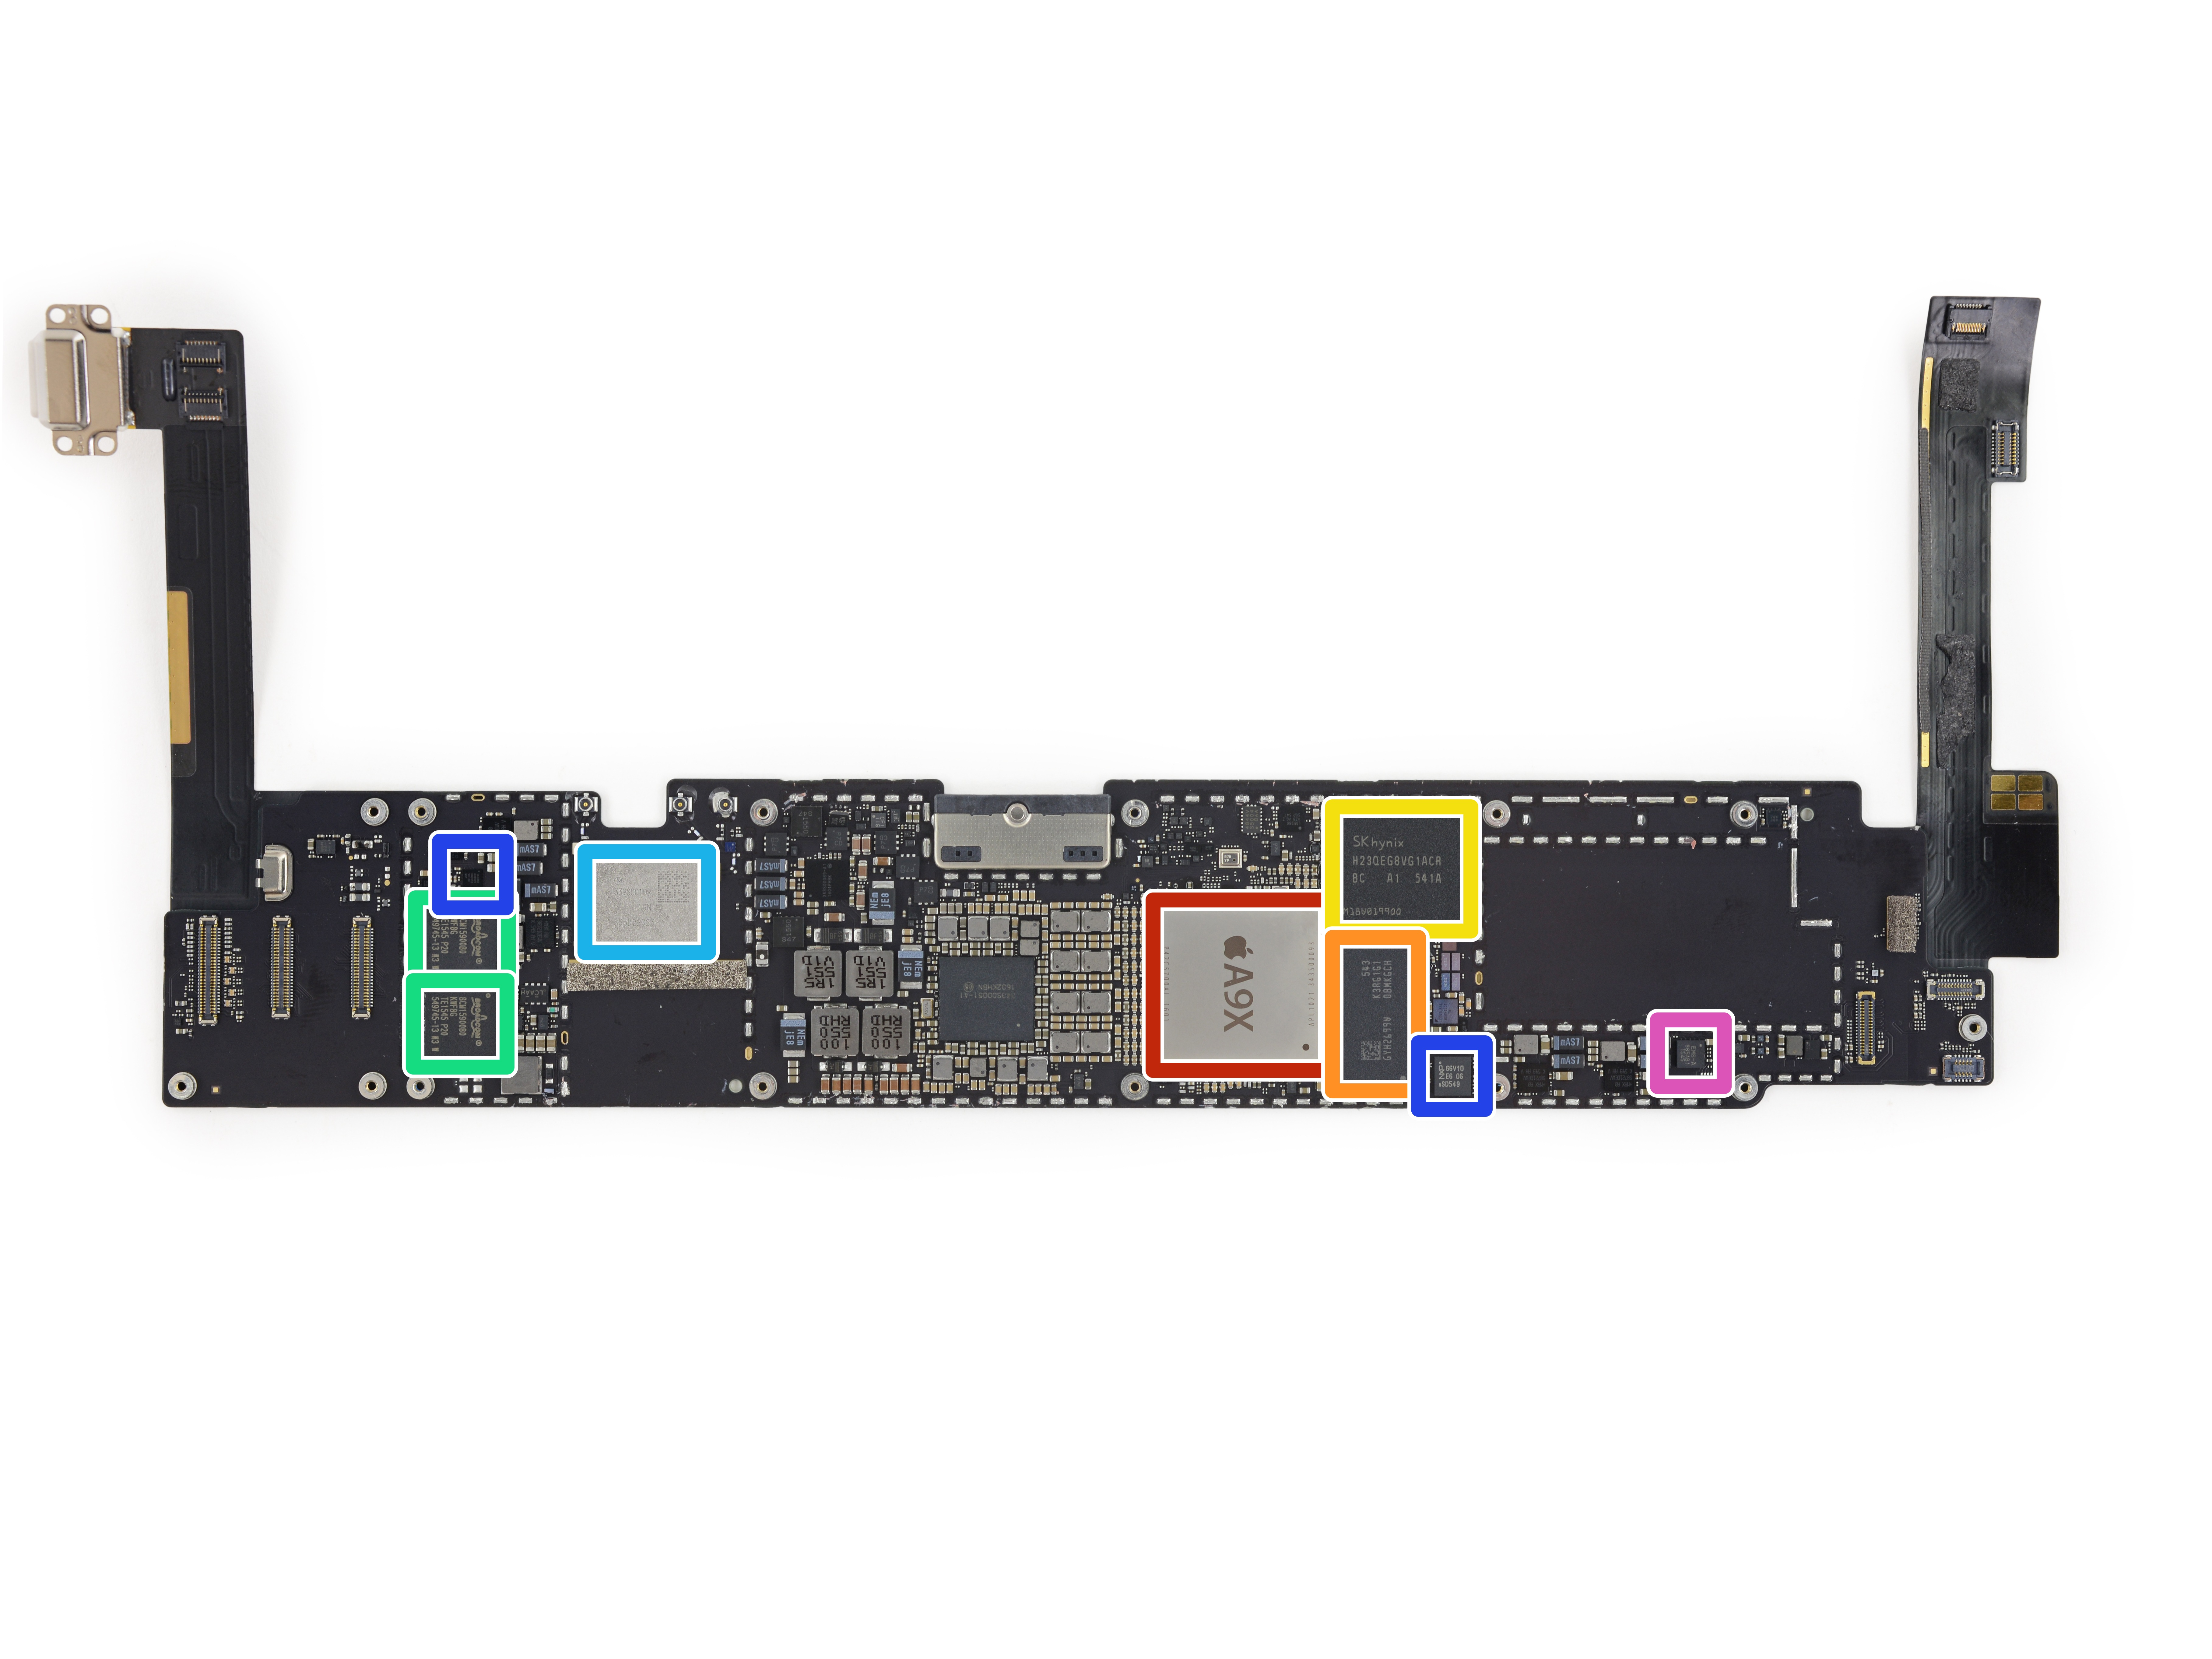 9.7 inch iPad Pro was in the hands of craftsmen from iFixit